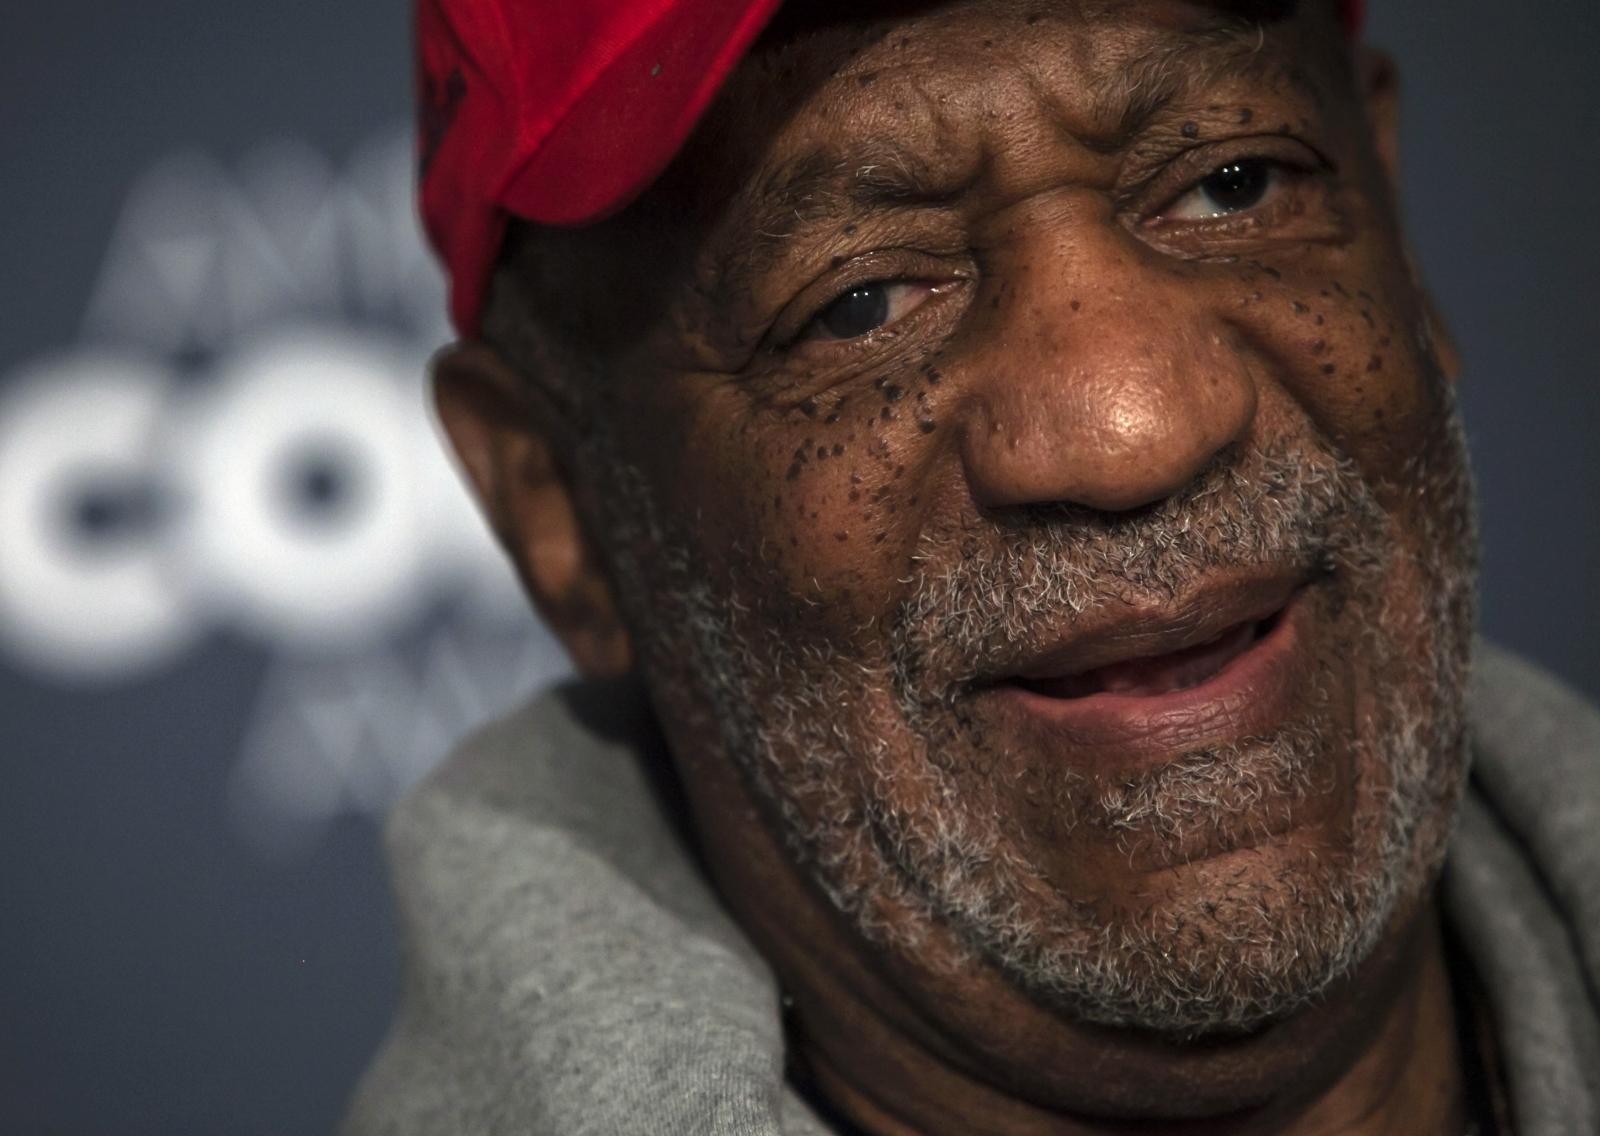 More women are coming forward with allegations that they were sexually assaulted by comedian Billy Cosby